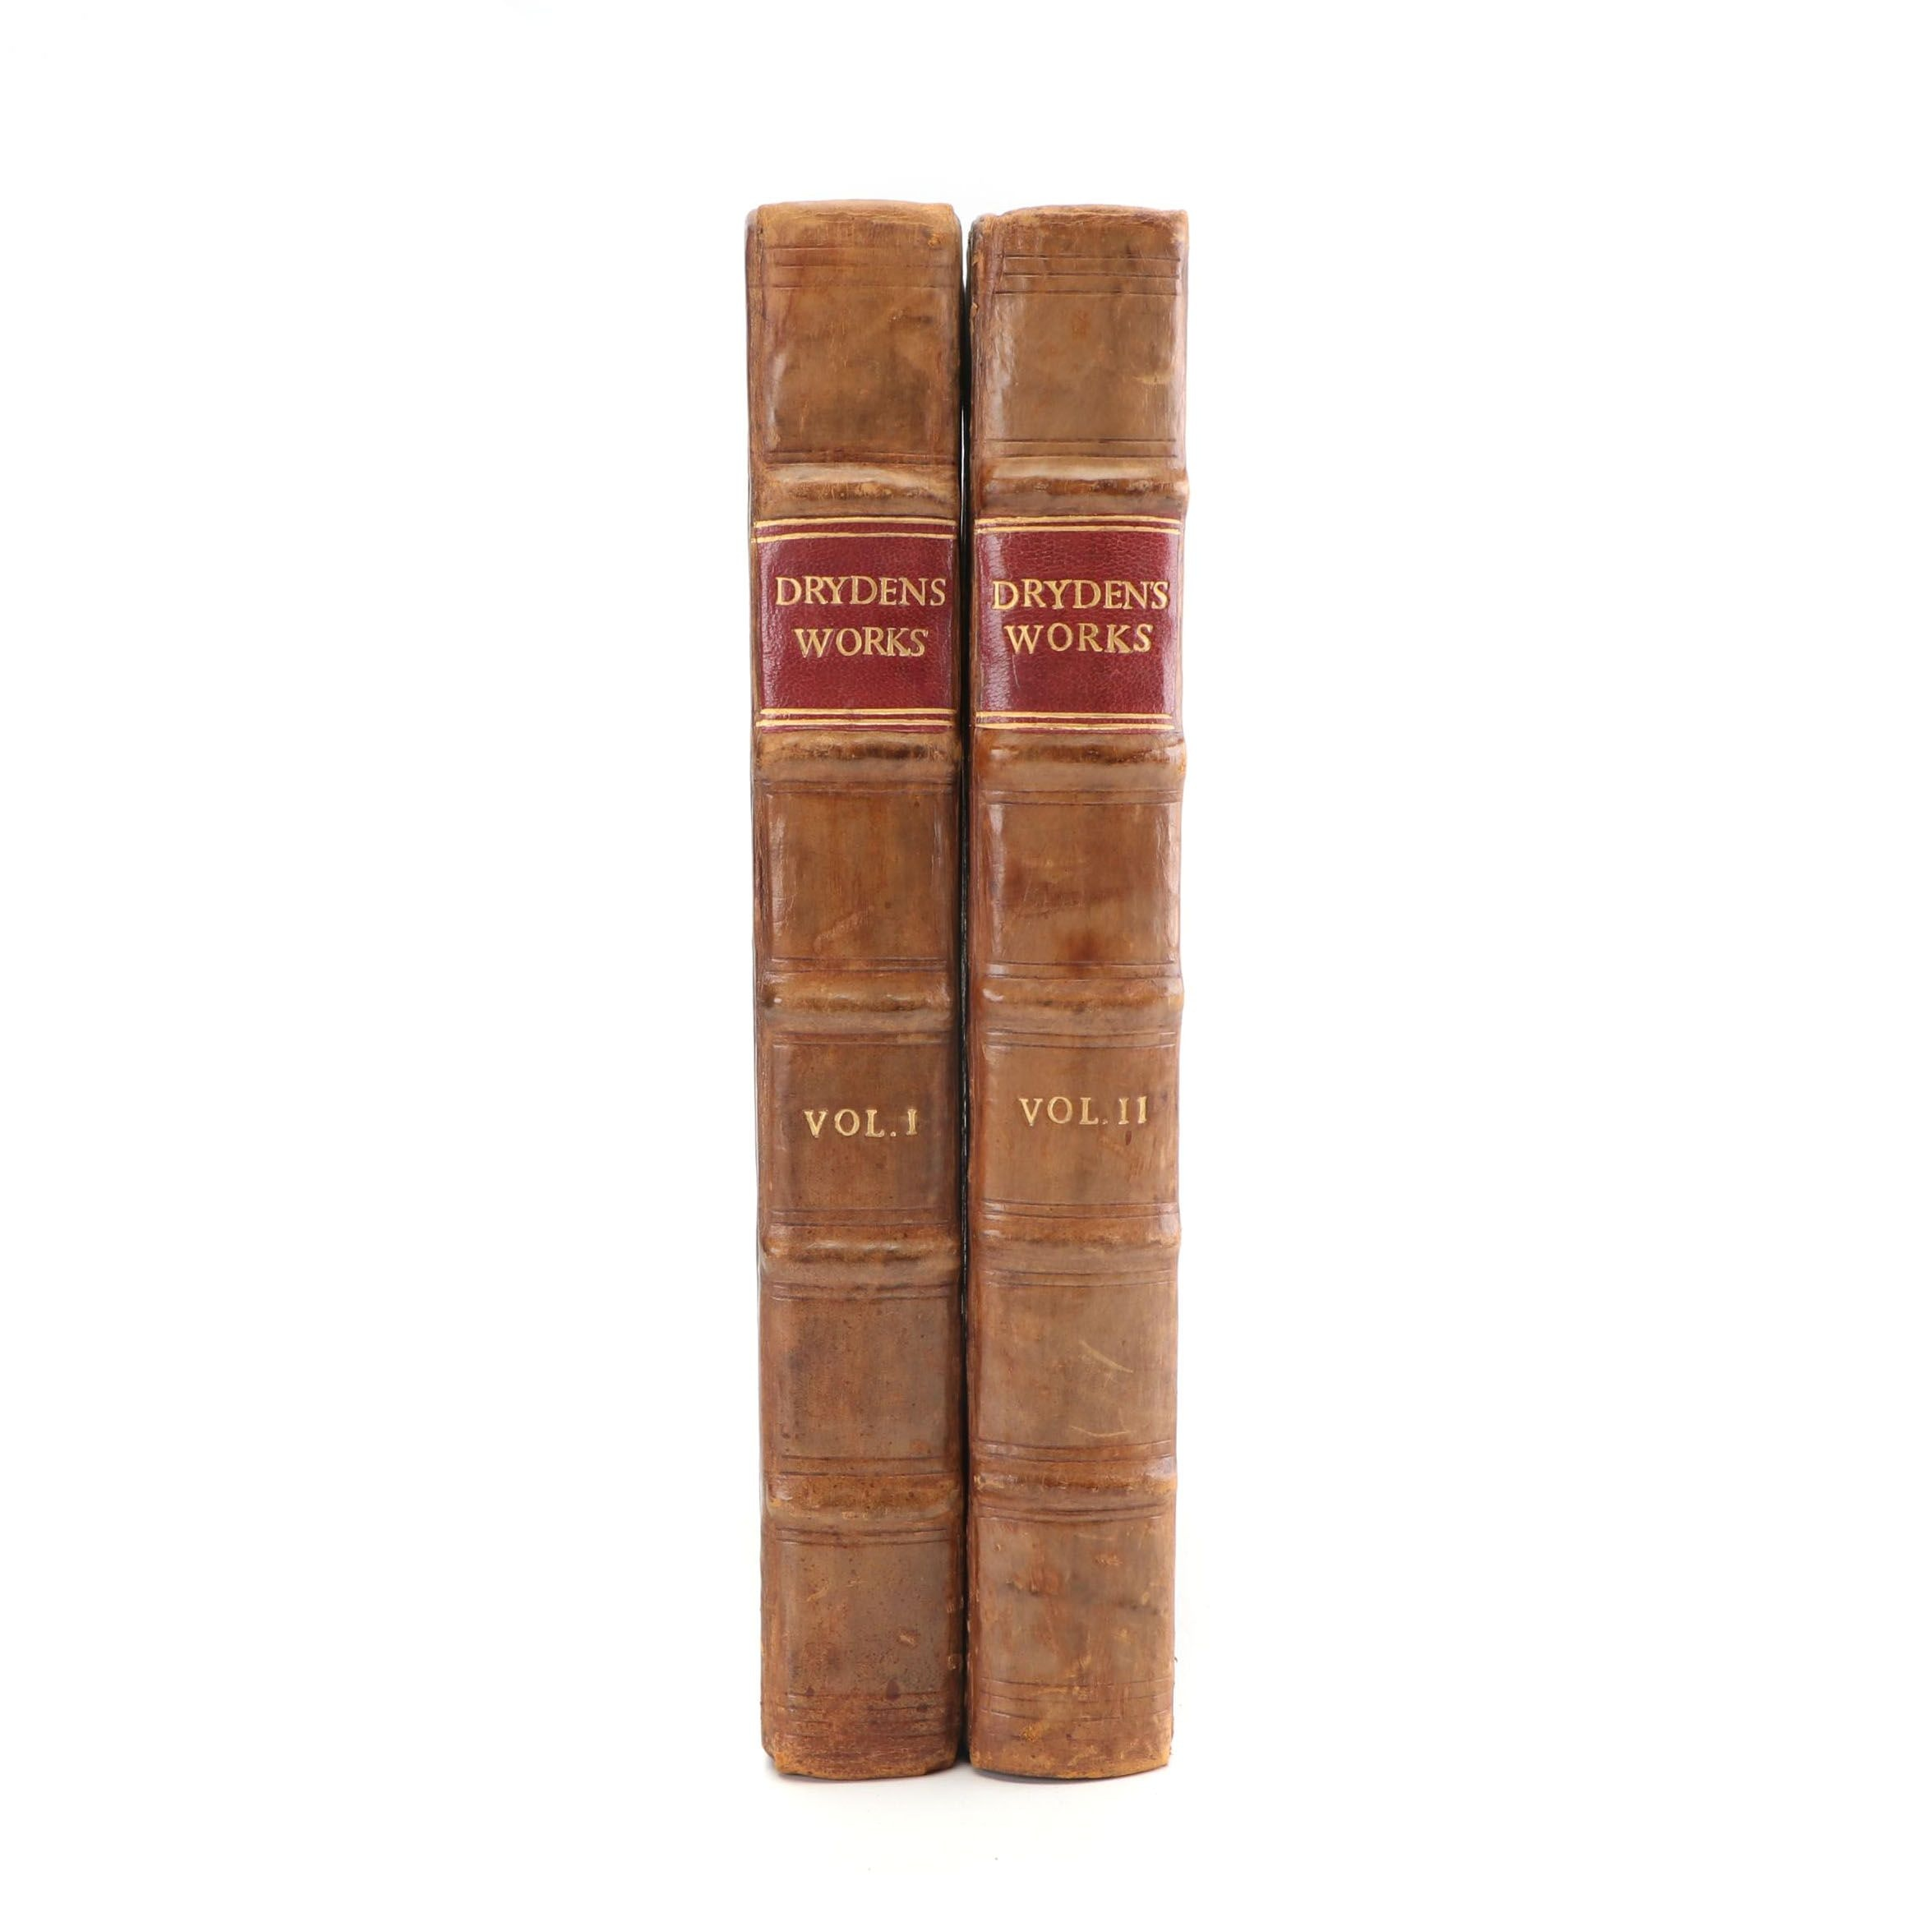 "Leather Bound ""Dryden's Works"" Volumes I-II by John Dryden, 1801"